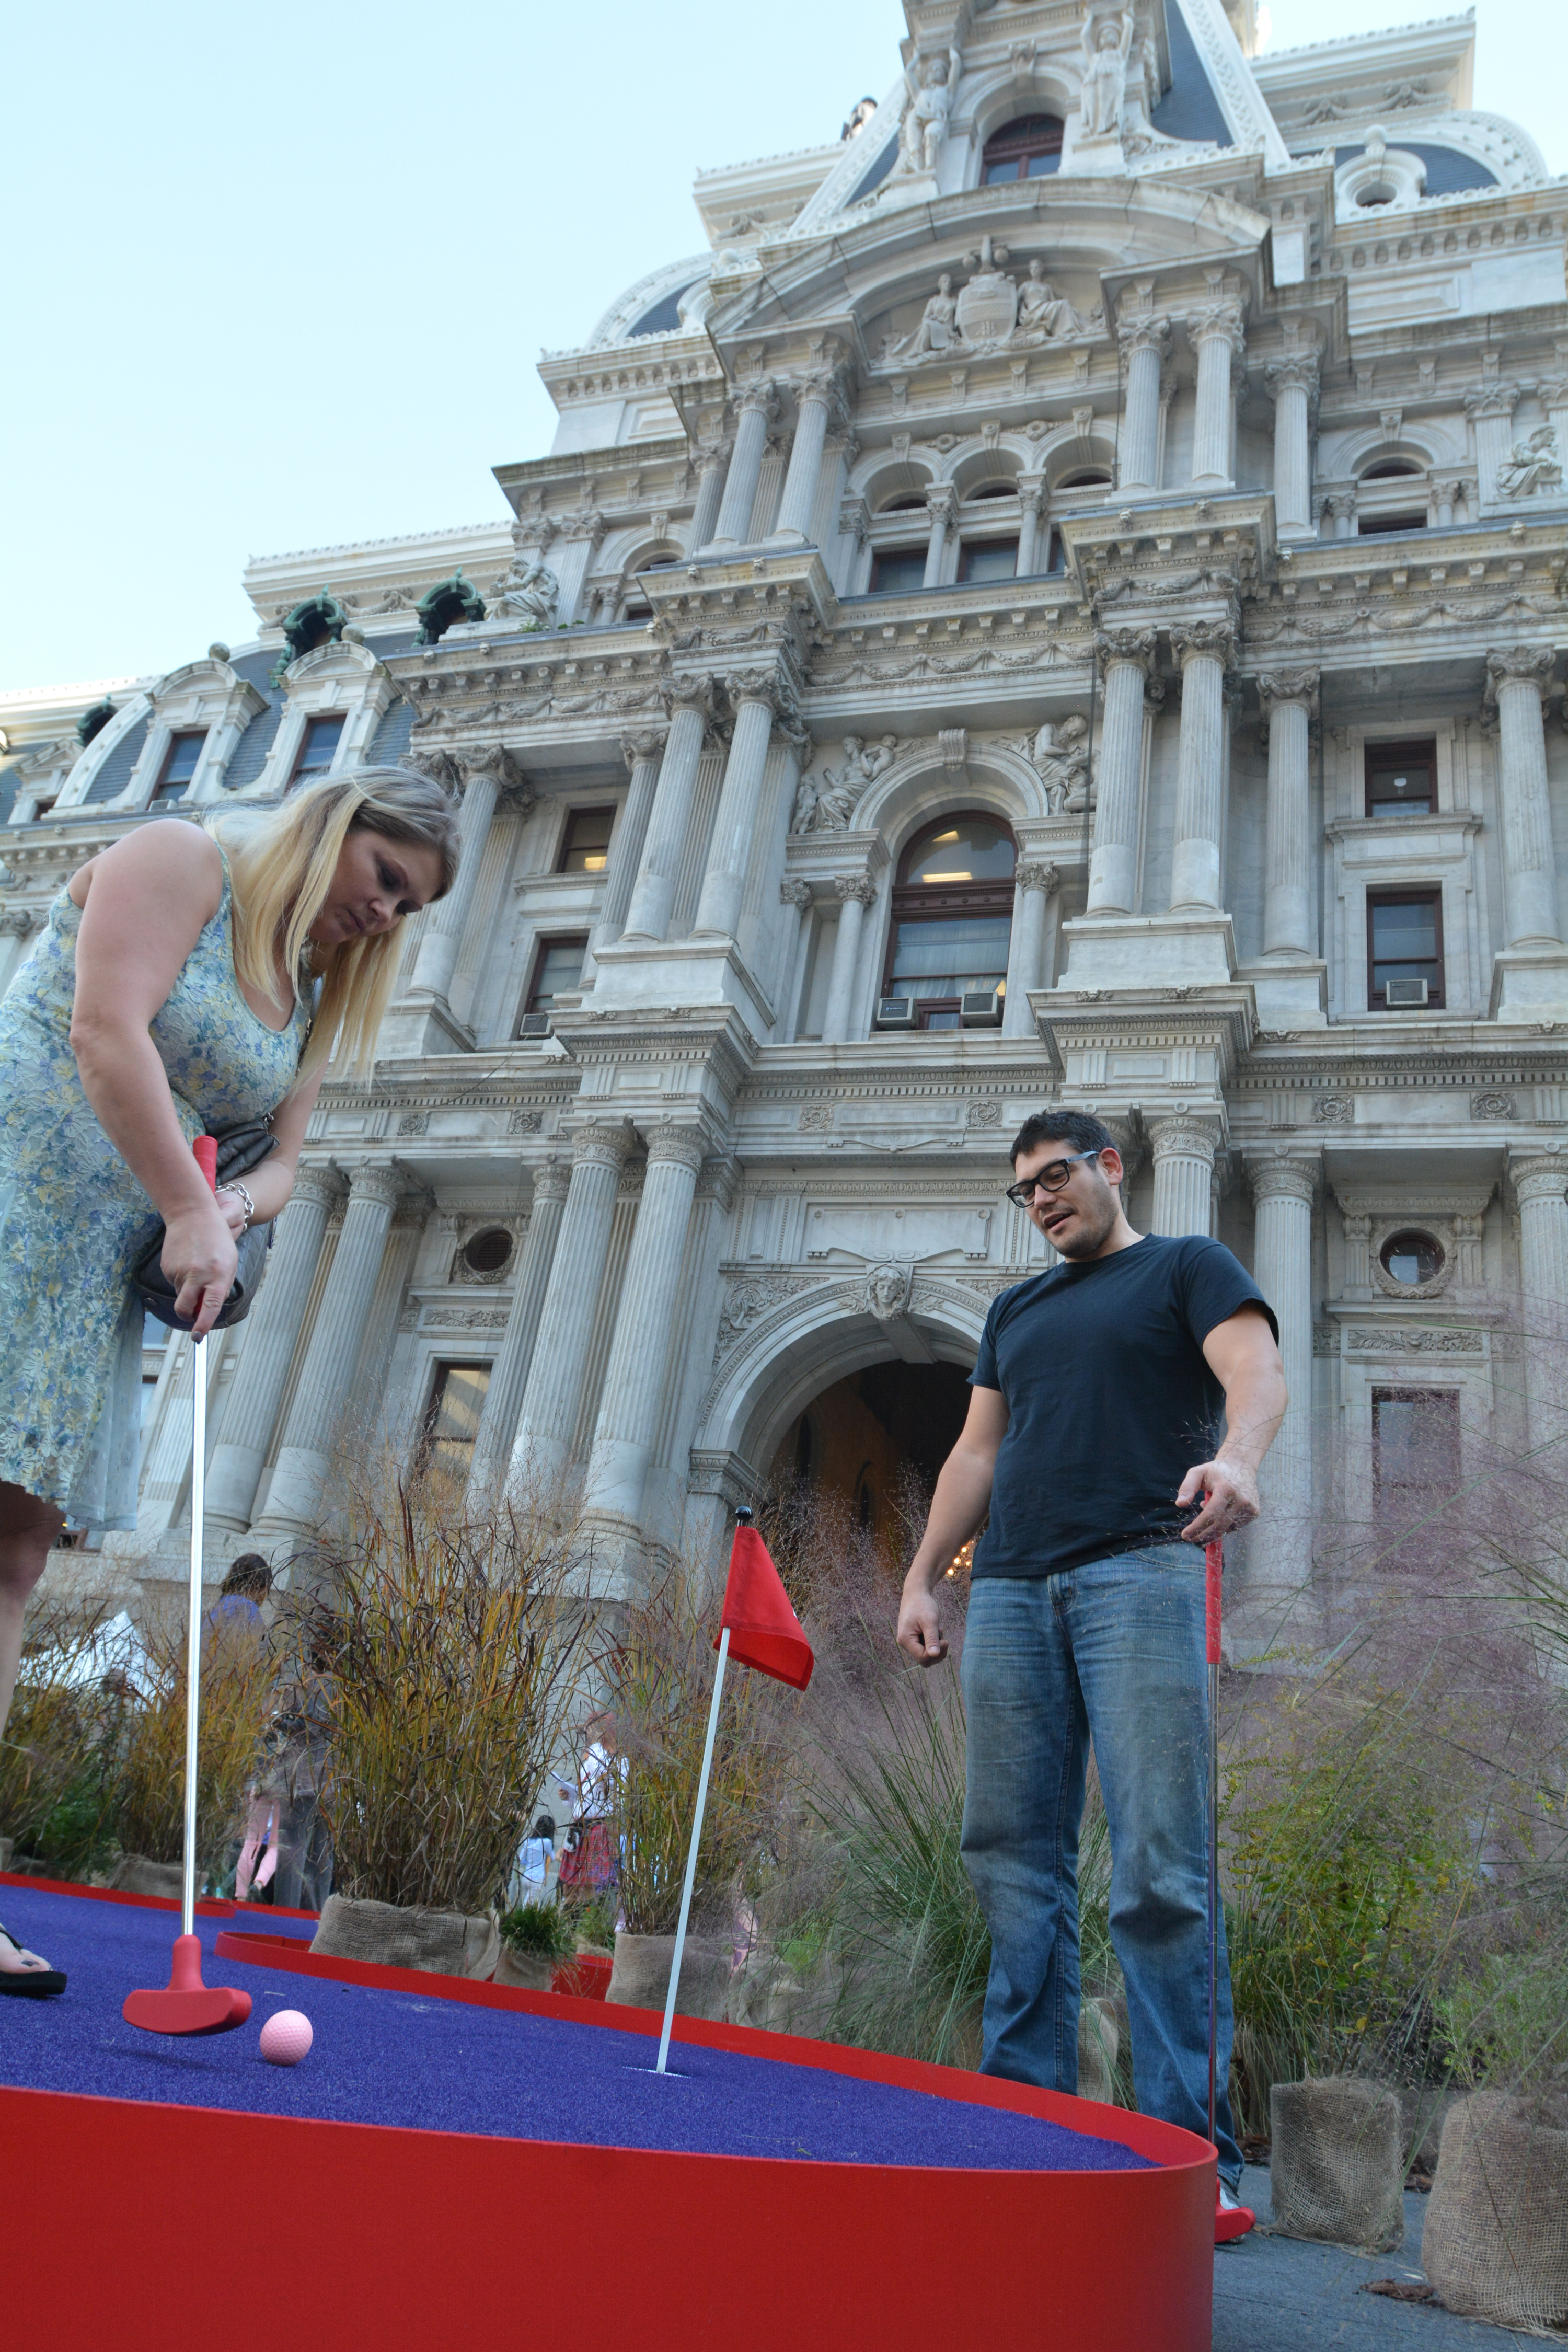 """A couple plays a round of miniature golf on a five-hole course set up as part of """"the world's largest putting green"""" event at Dilworth Park at City Hall Tuesday. A 104-foot 2-inch putting green  at Dilworth at which former Eagle Hollis Thomas helped set a Guinness World Record was part of the event. The event was sponsored by The Famous Grouse, Scotland's number one Scotch. (Photo: Mark C. Psoras)"""